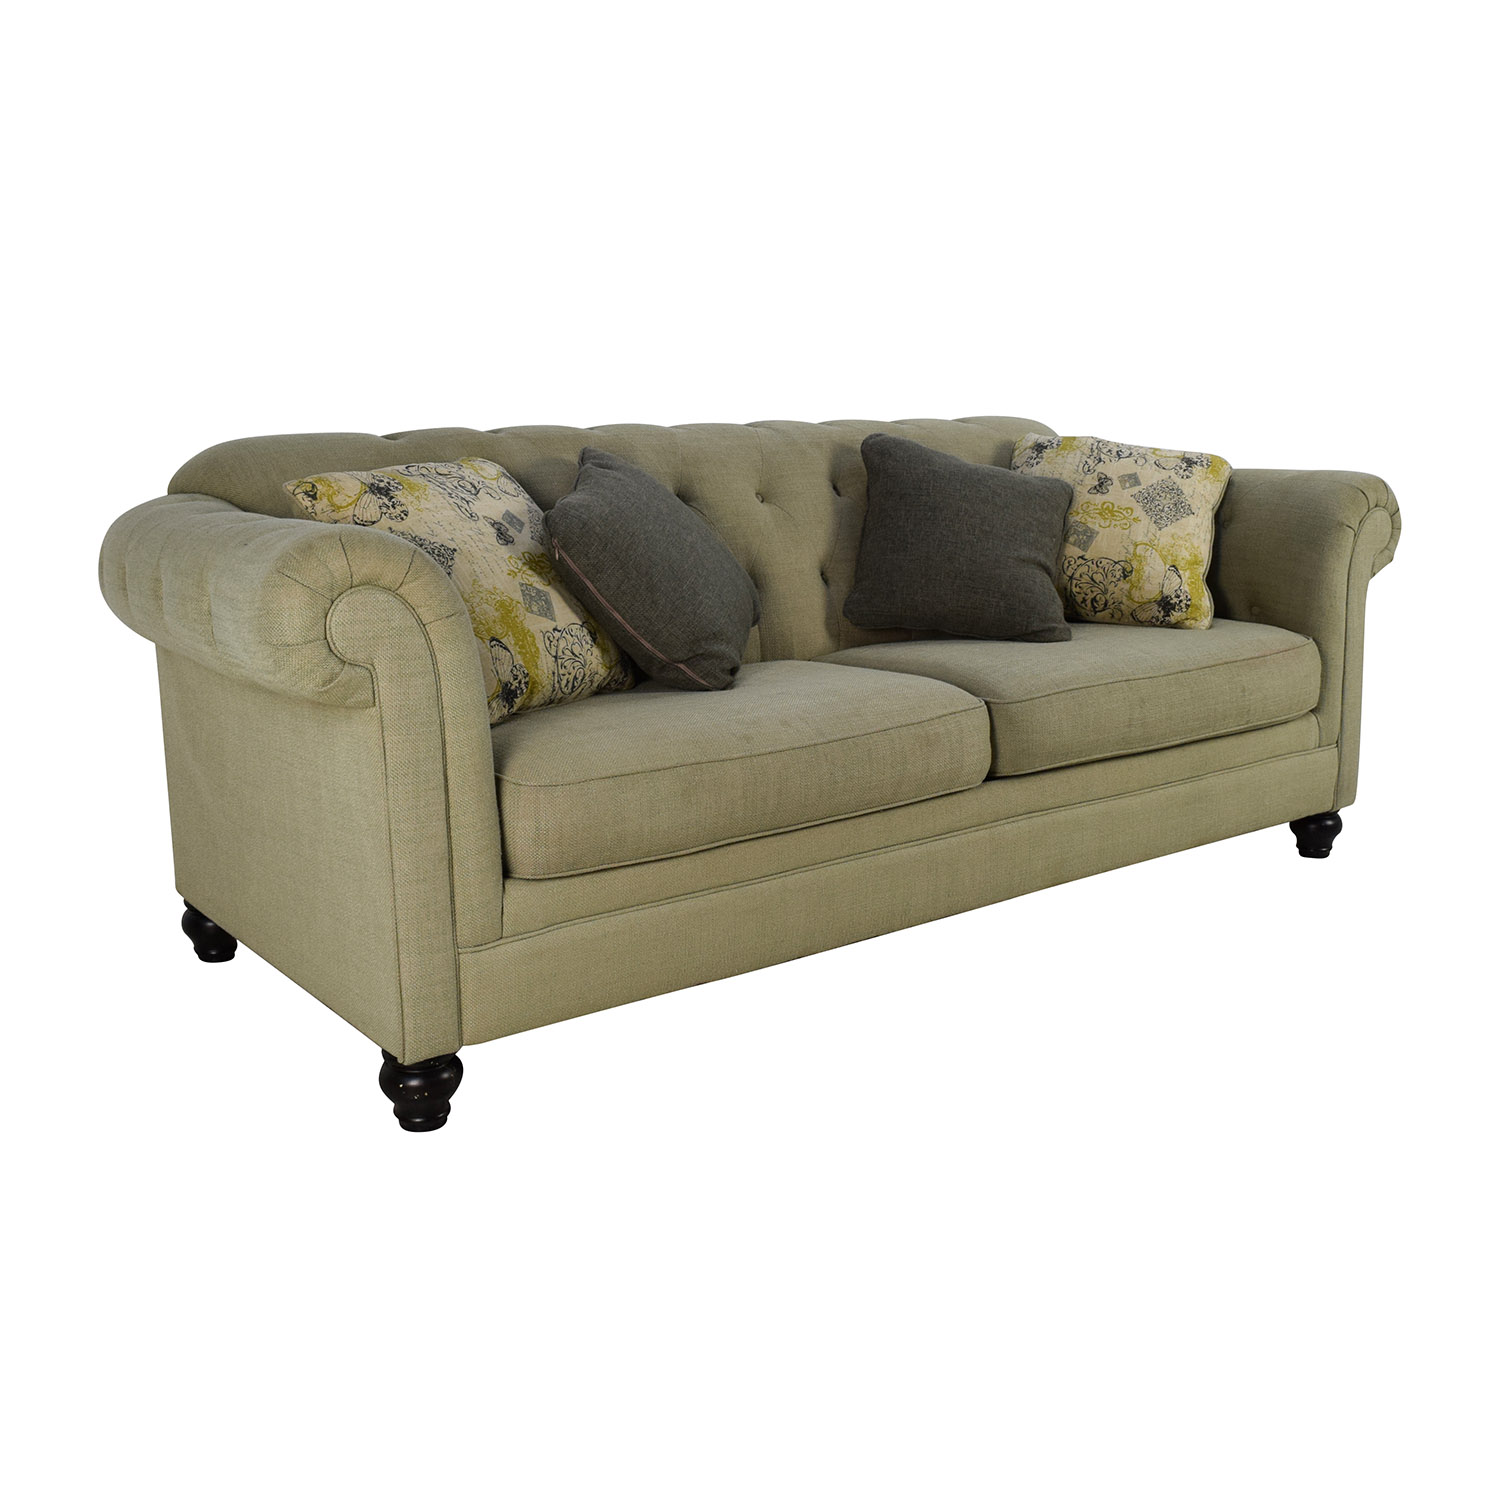 76 off ashley furniture ashley furniture hindell park for Sofa bed ashley furniture